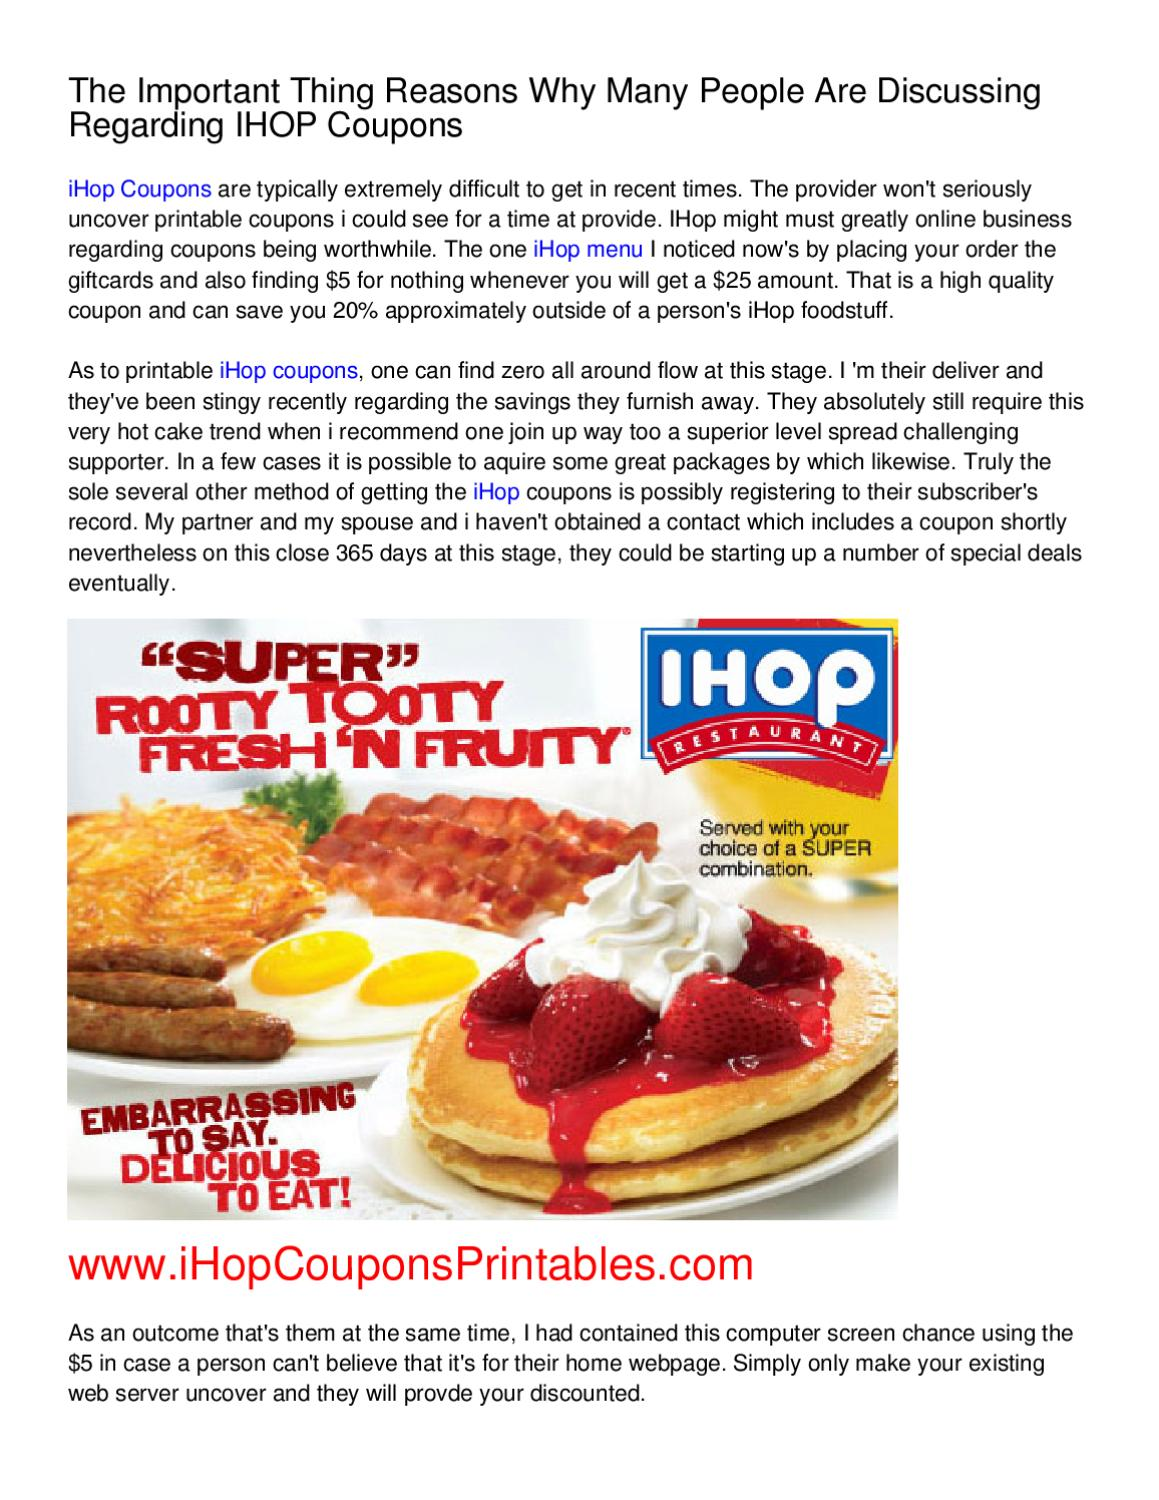 image regarding Ihop Coupons Printable identified as The Crucial Detail Factors Why Countless These Are